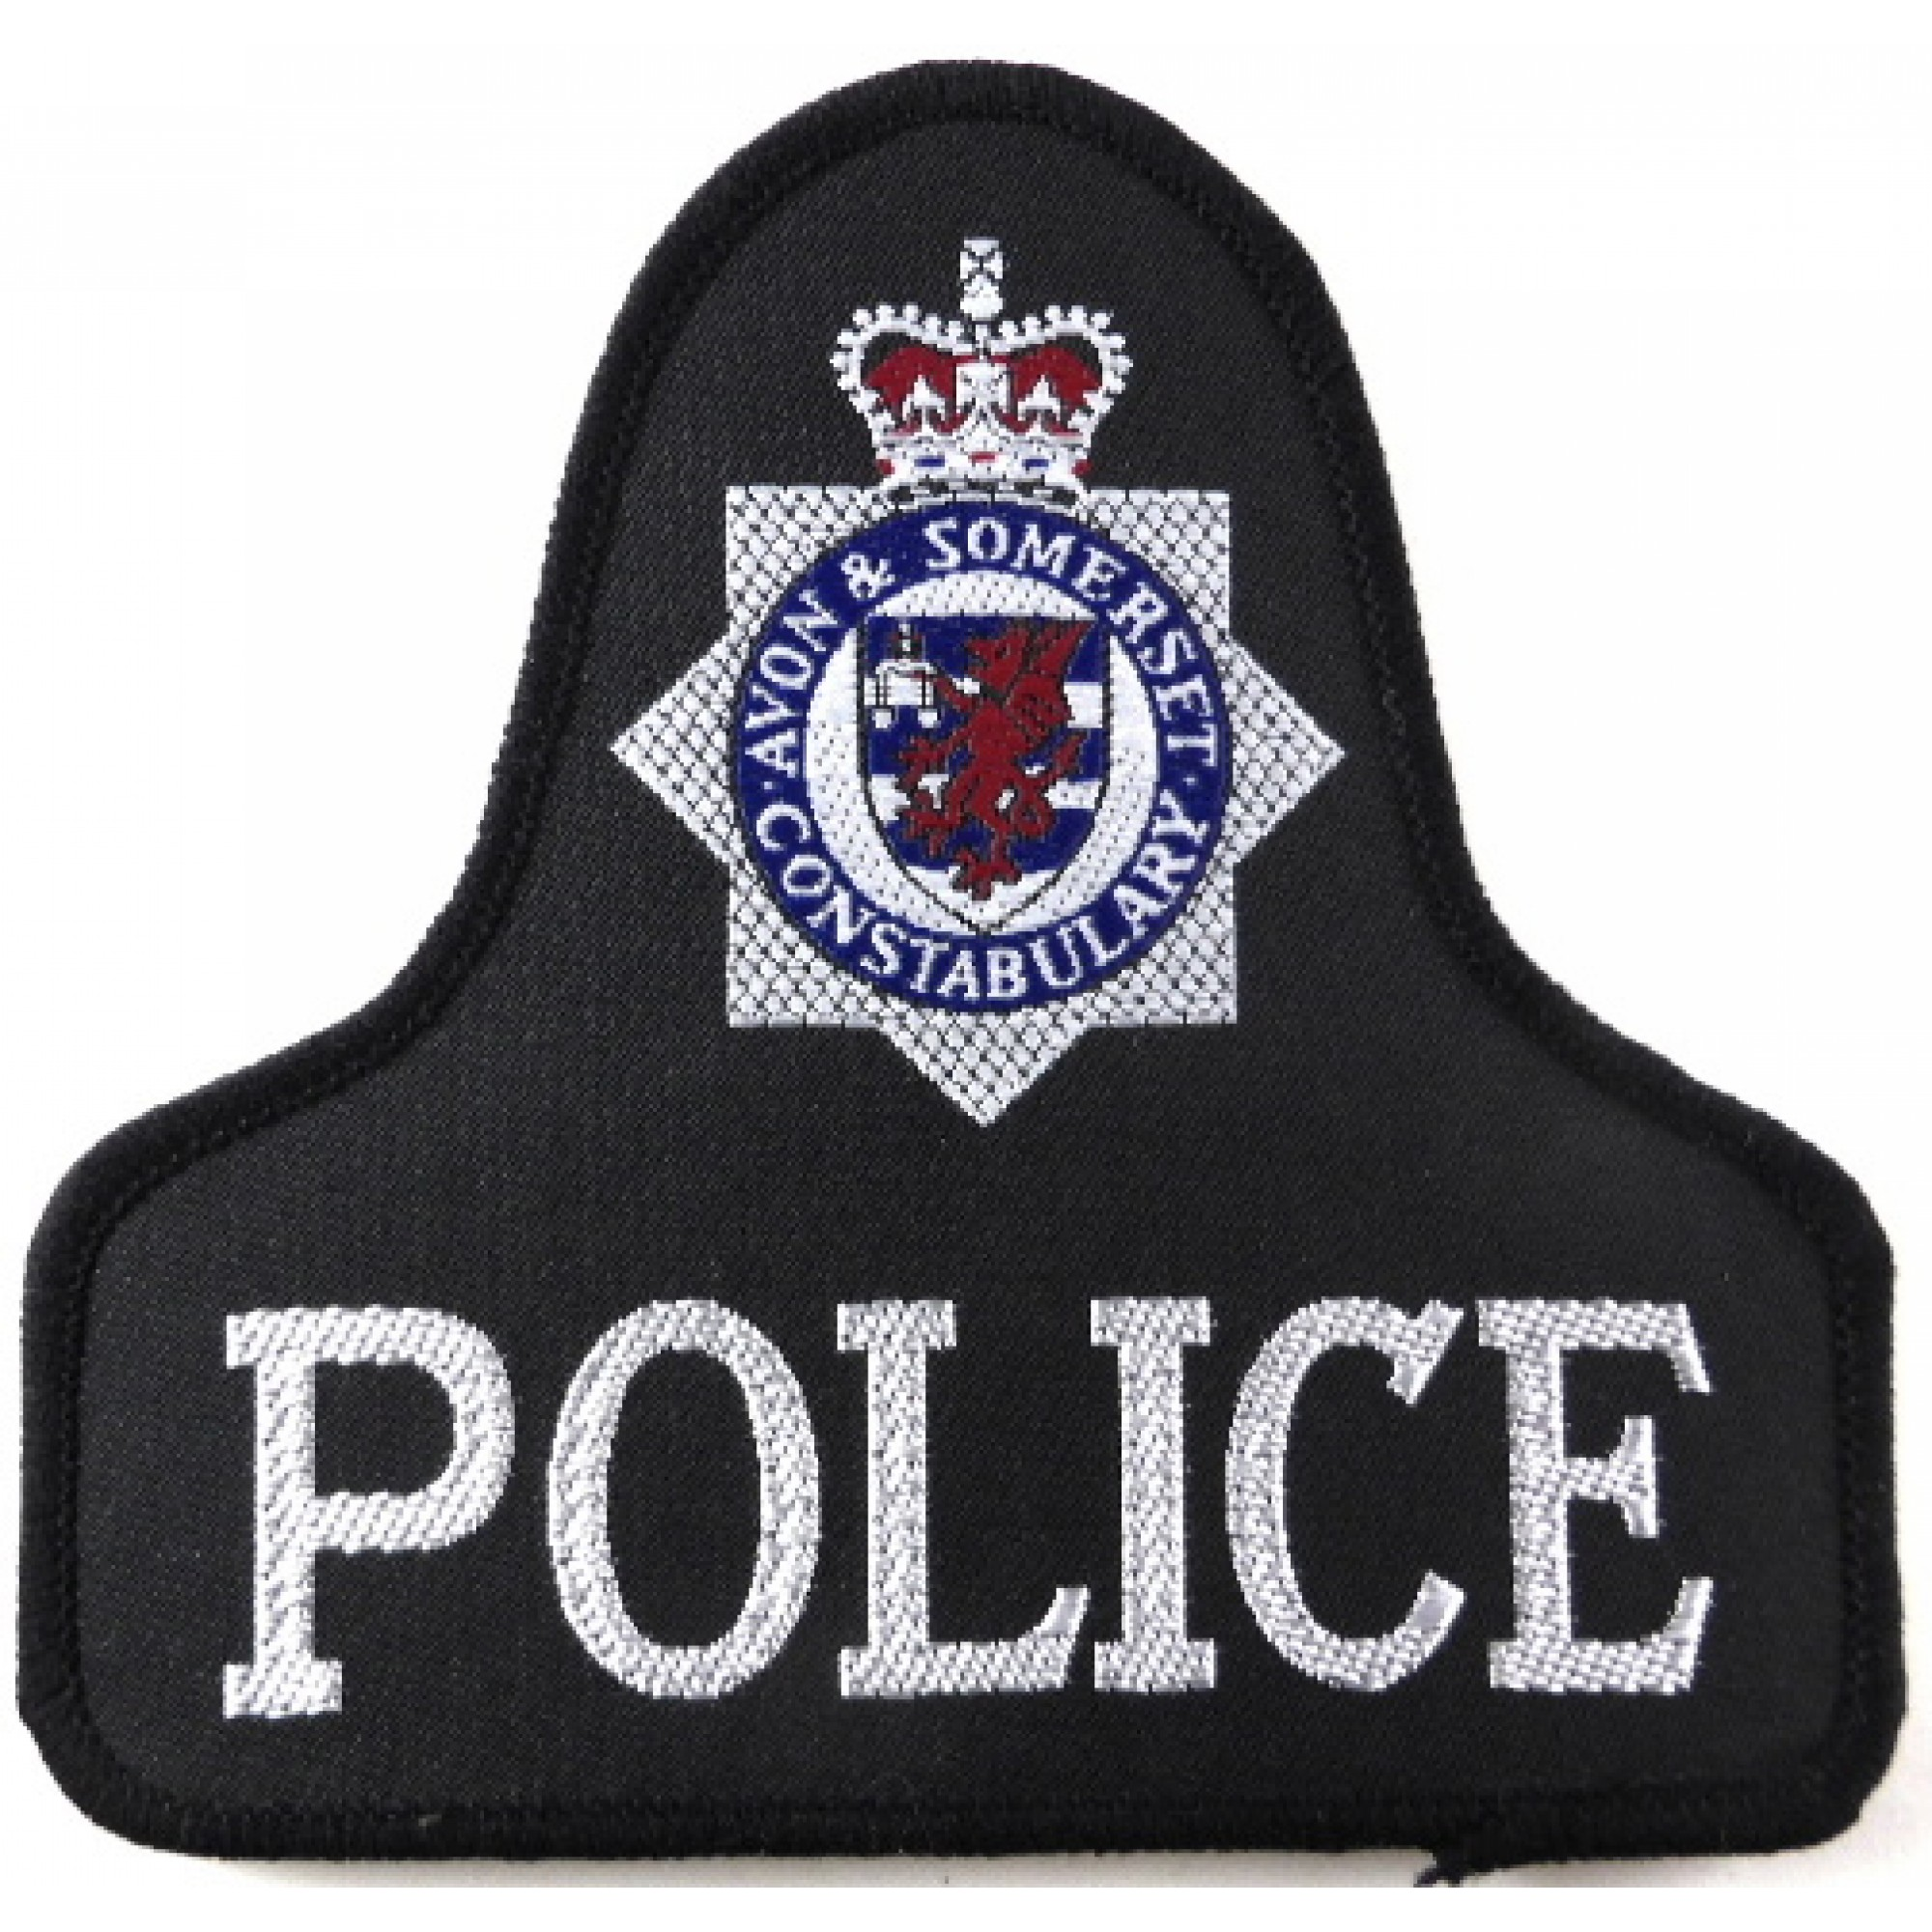 Avon /& Somerset Constabulary